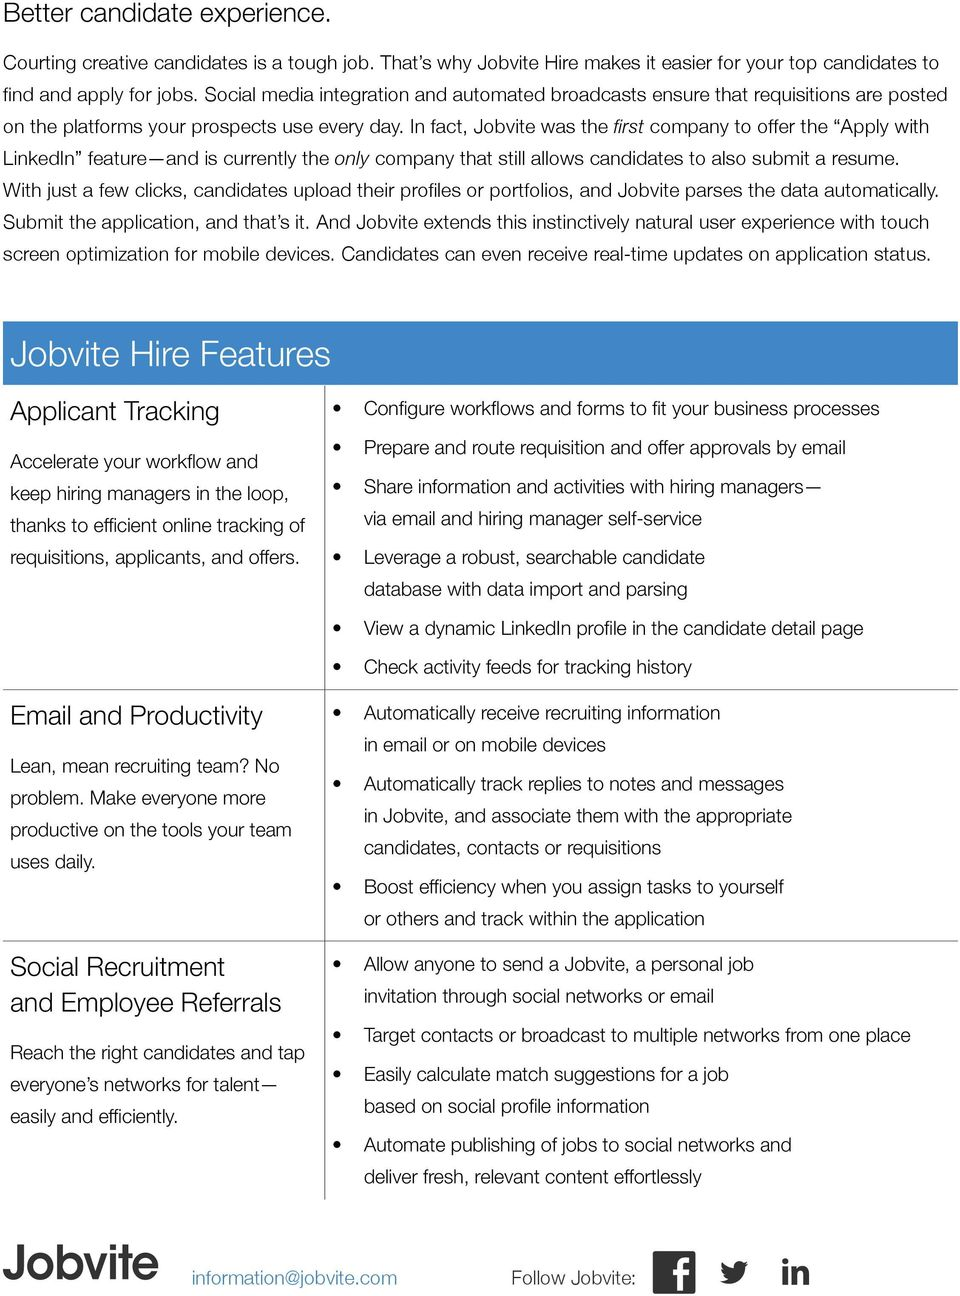 In fact, Jobvite was the first company to offer the Apply with LinkedIn feature and is currently the only company that still allows candidates to also submit a resume.